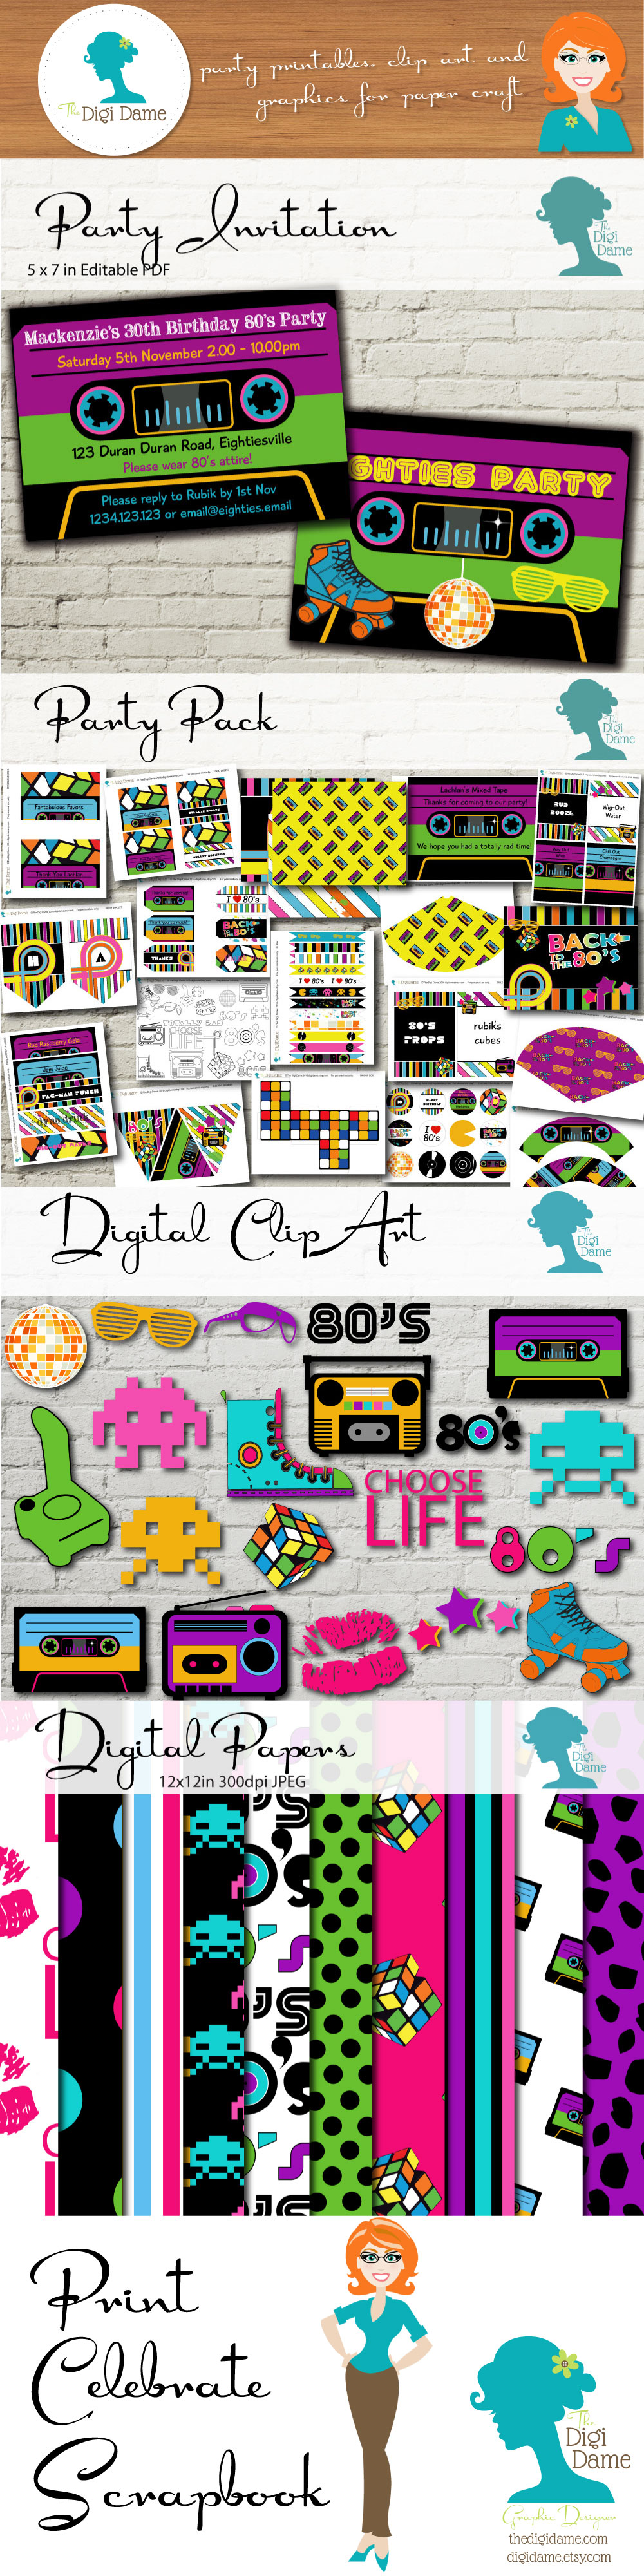 80\'s Party! Print your Party, Celebrate it, then Scrapbook.